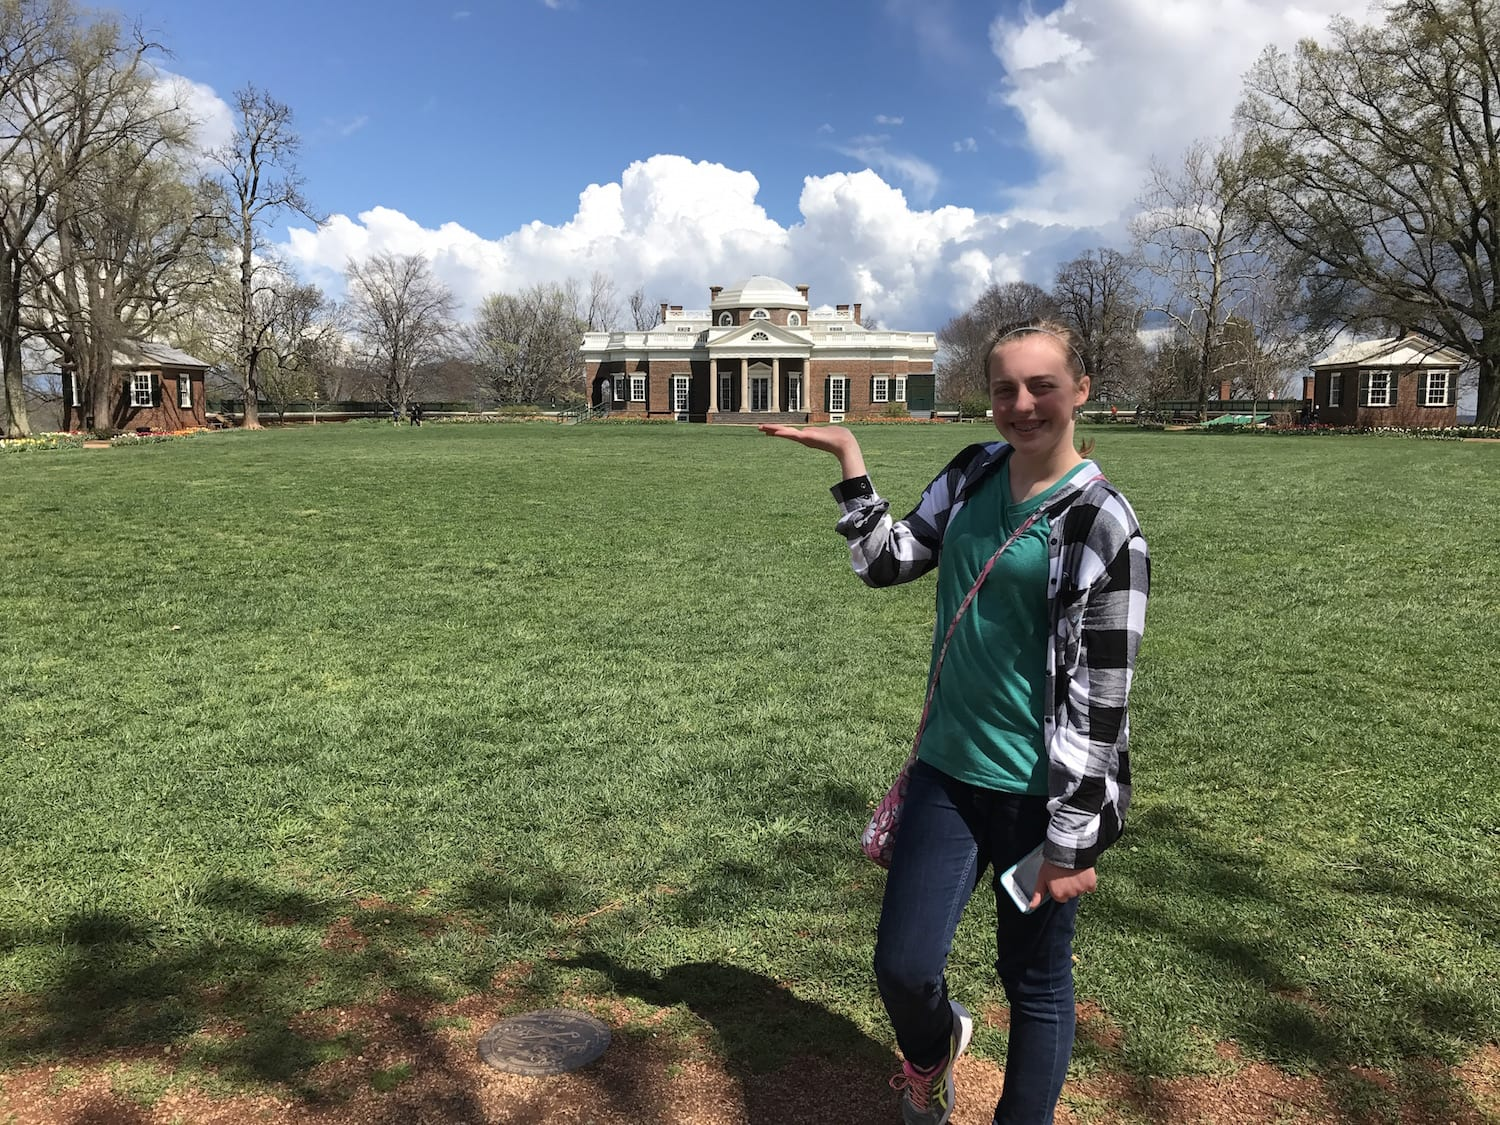 Natalie with Monticello Perspective picture